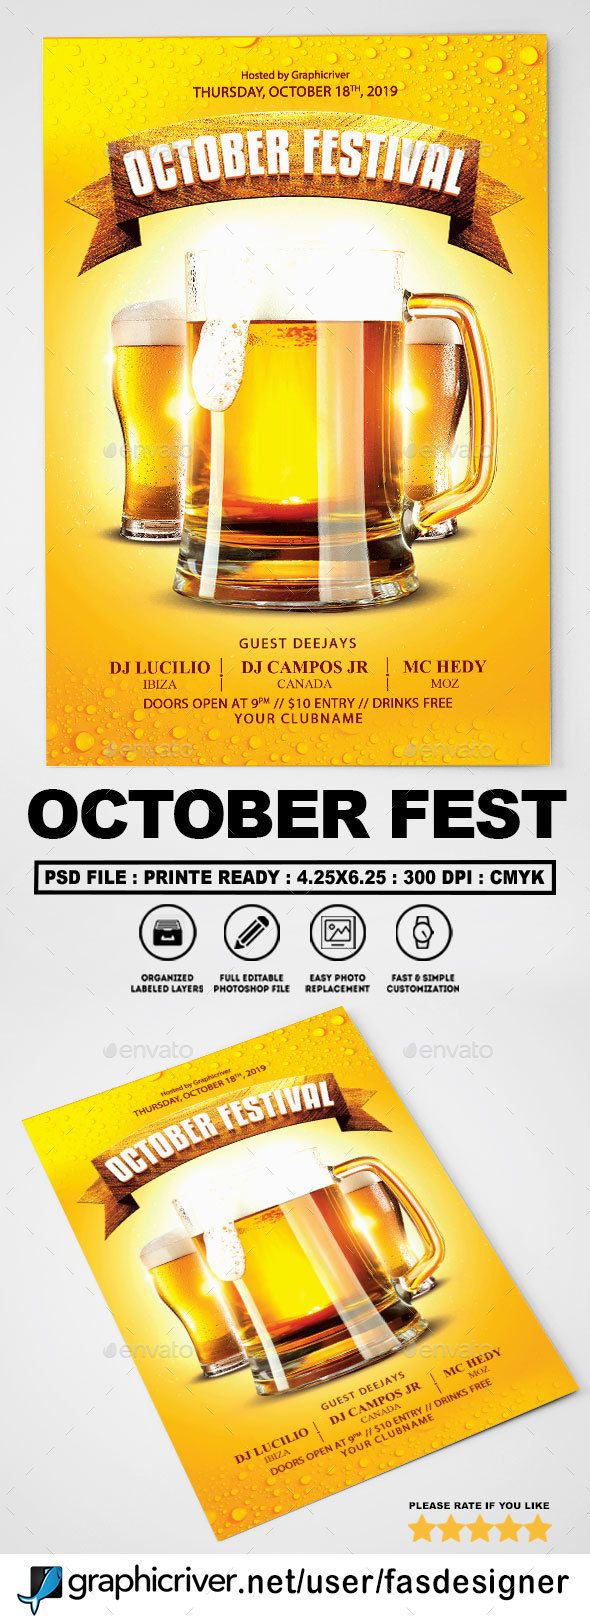 october festival flyer - Halloween Decoration Stores Near Me